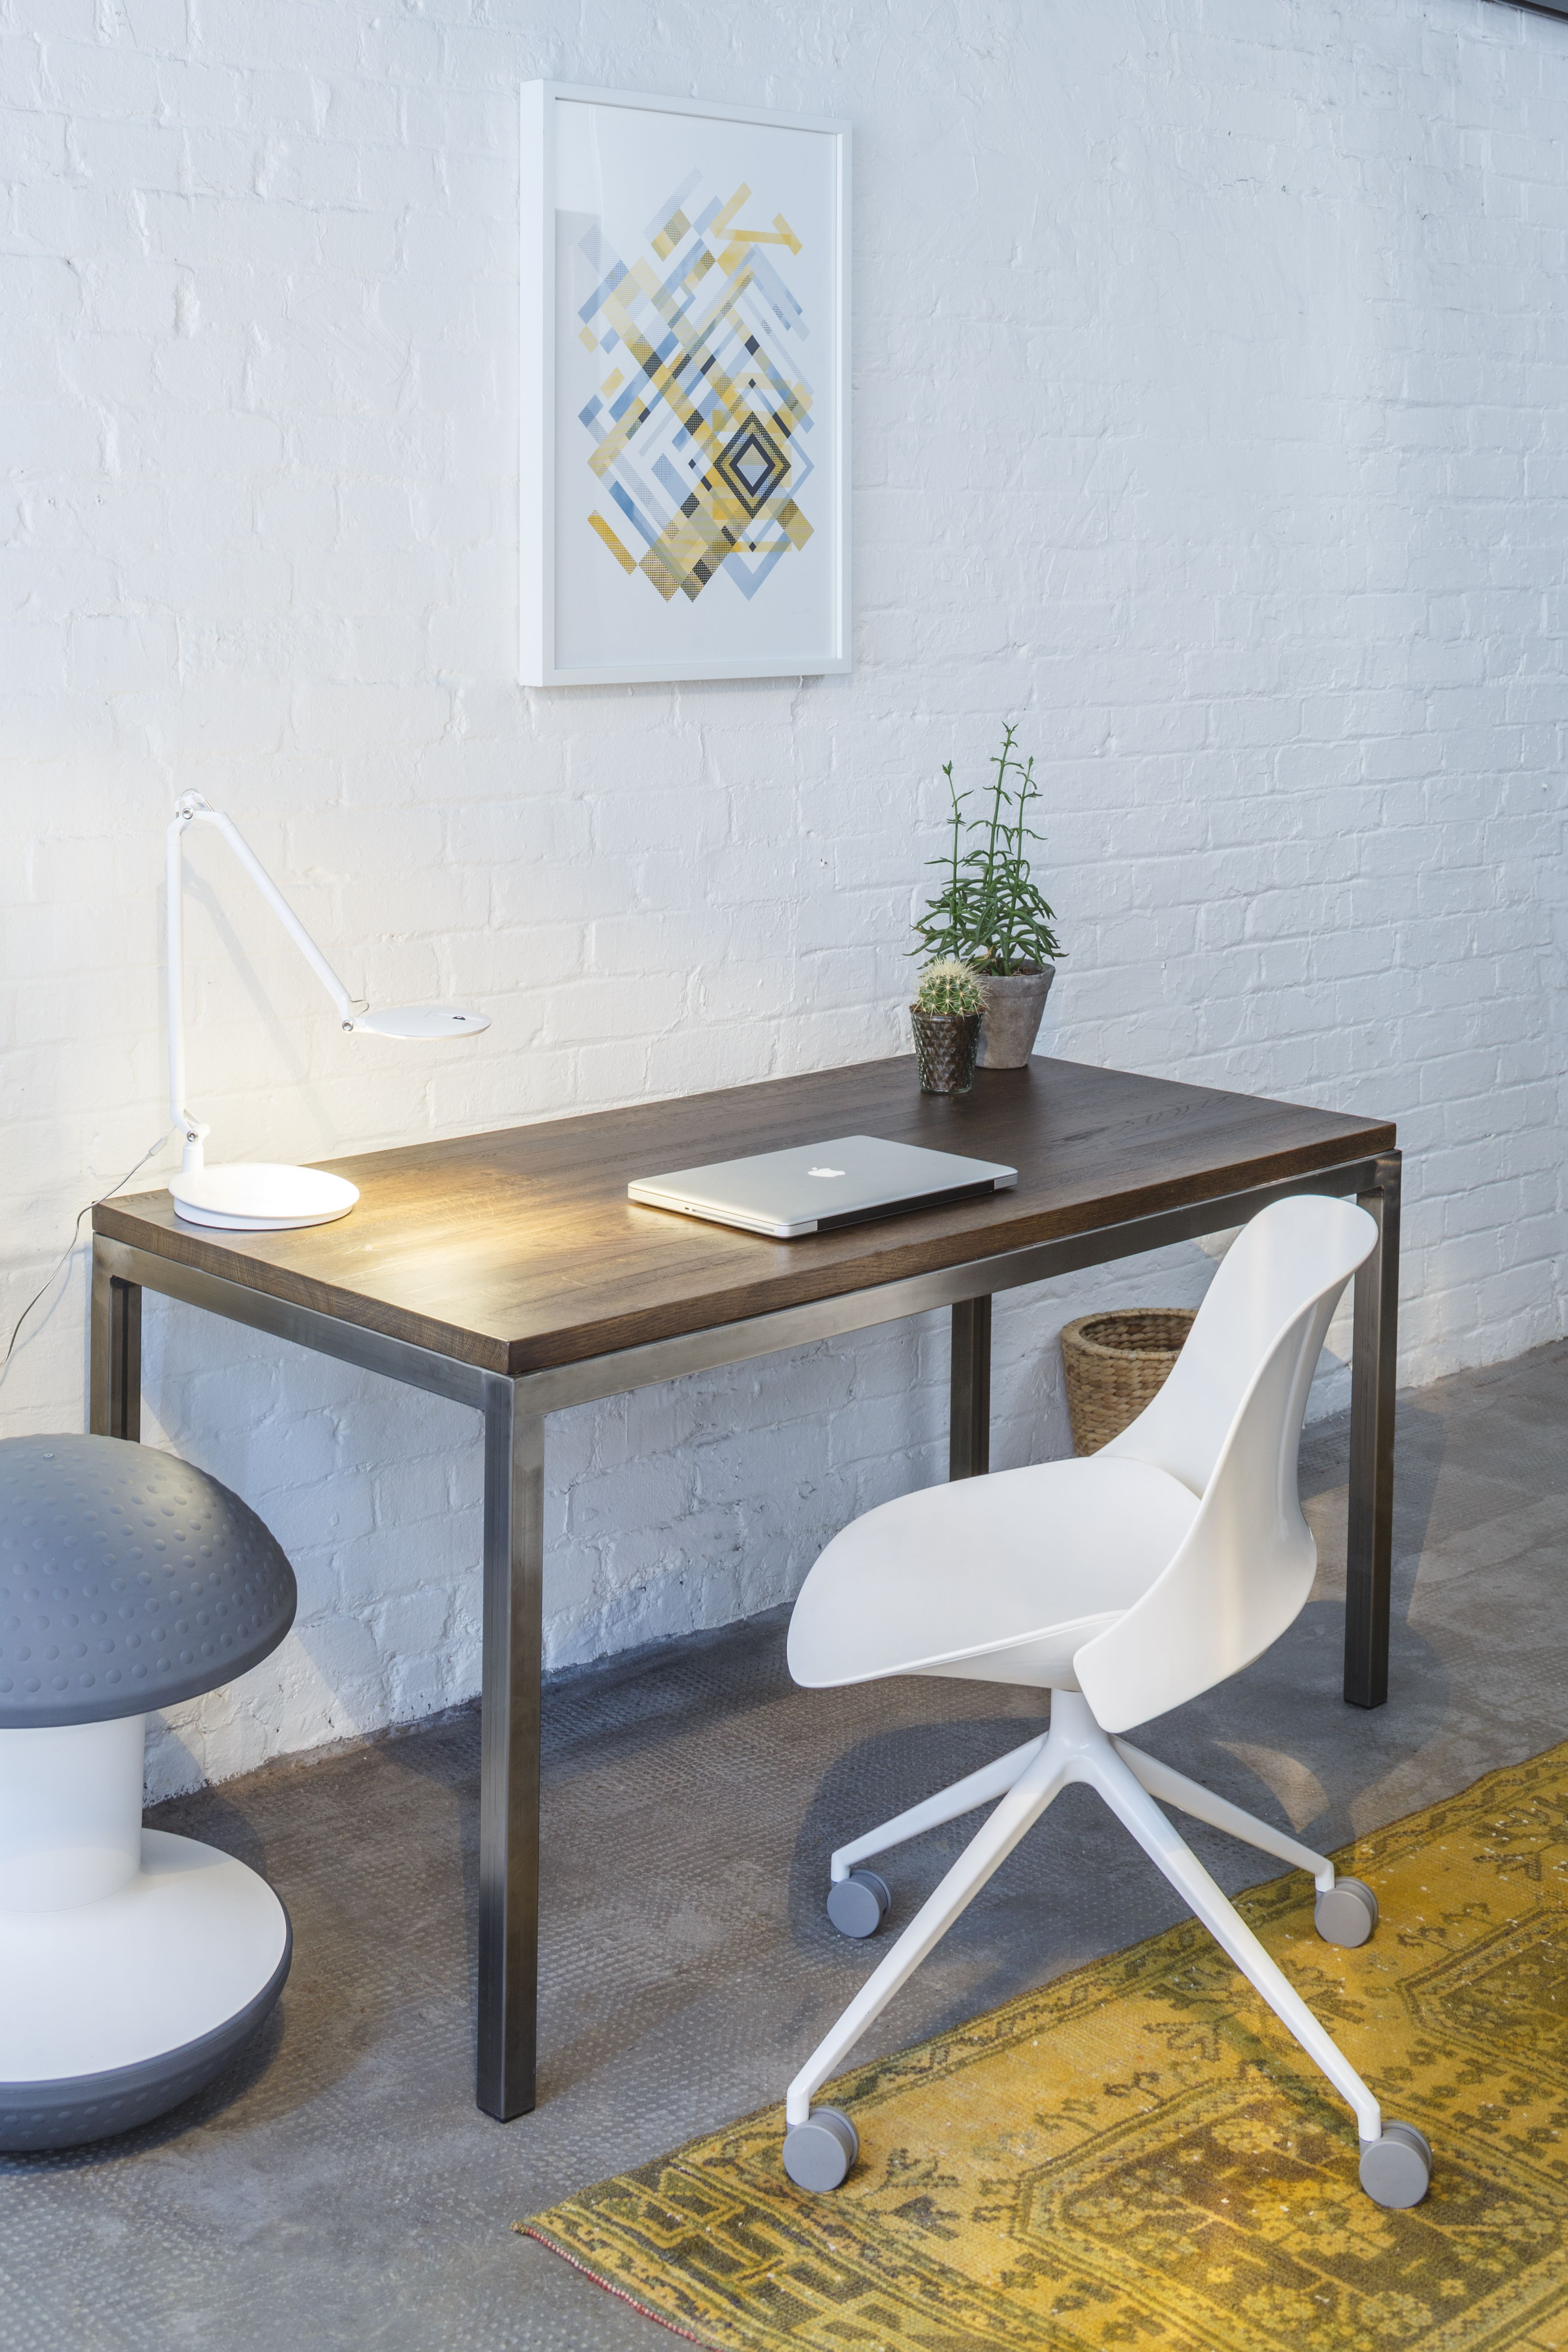 Trea Humanscale Office Furniture Solutions Ergonomic Office Furniture Furniture